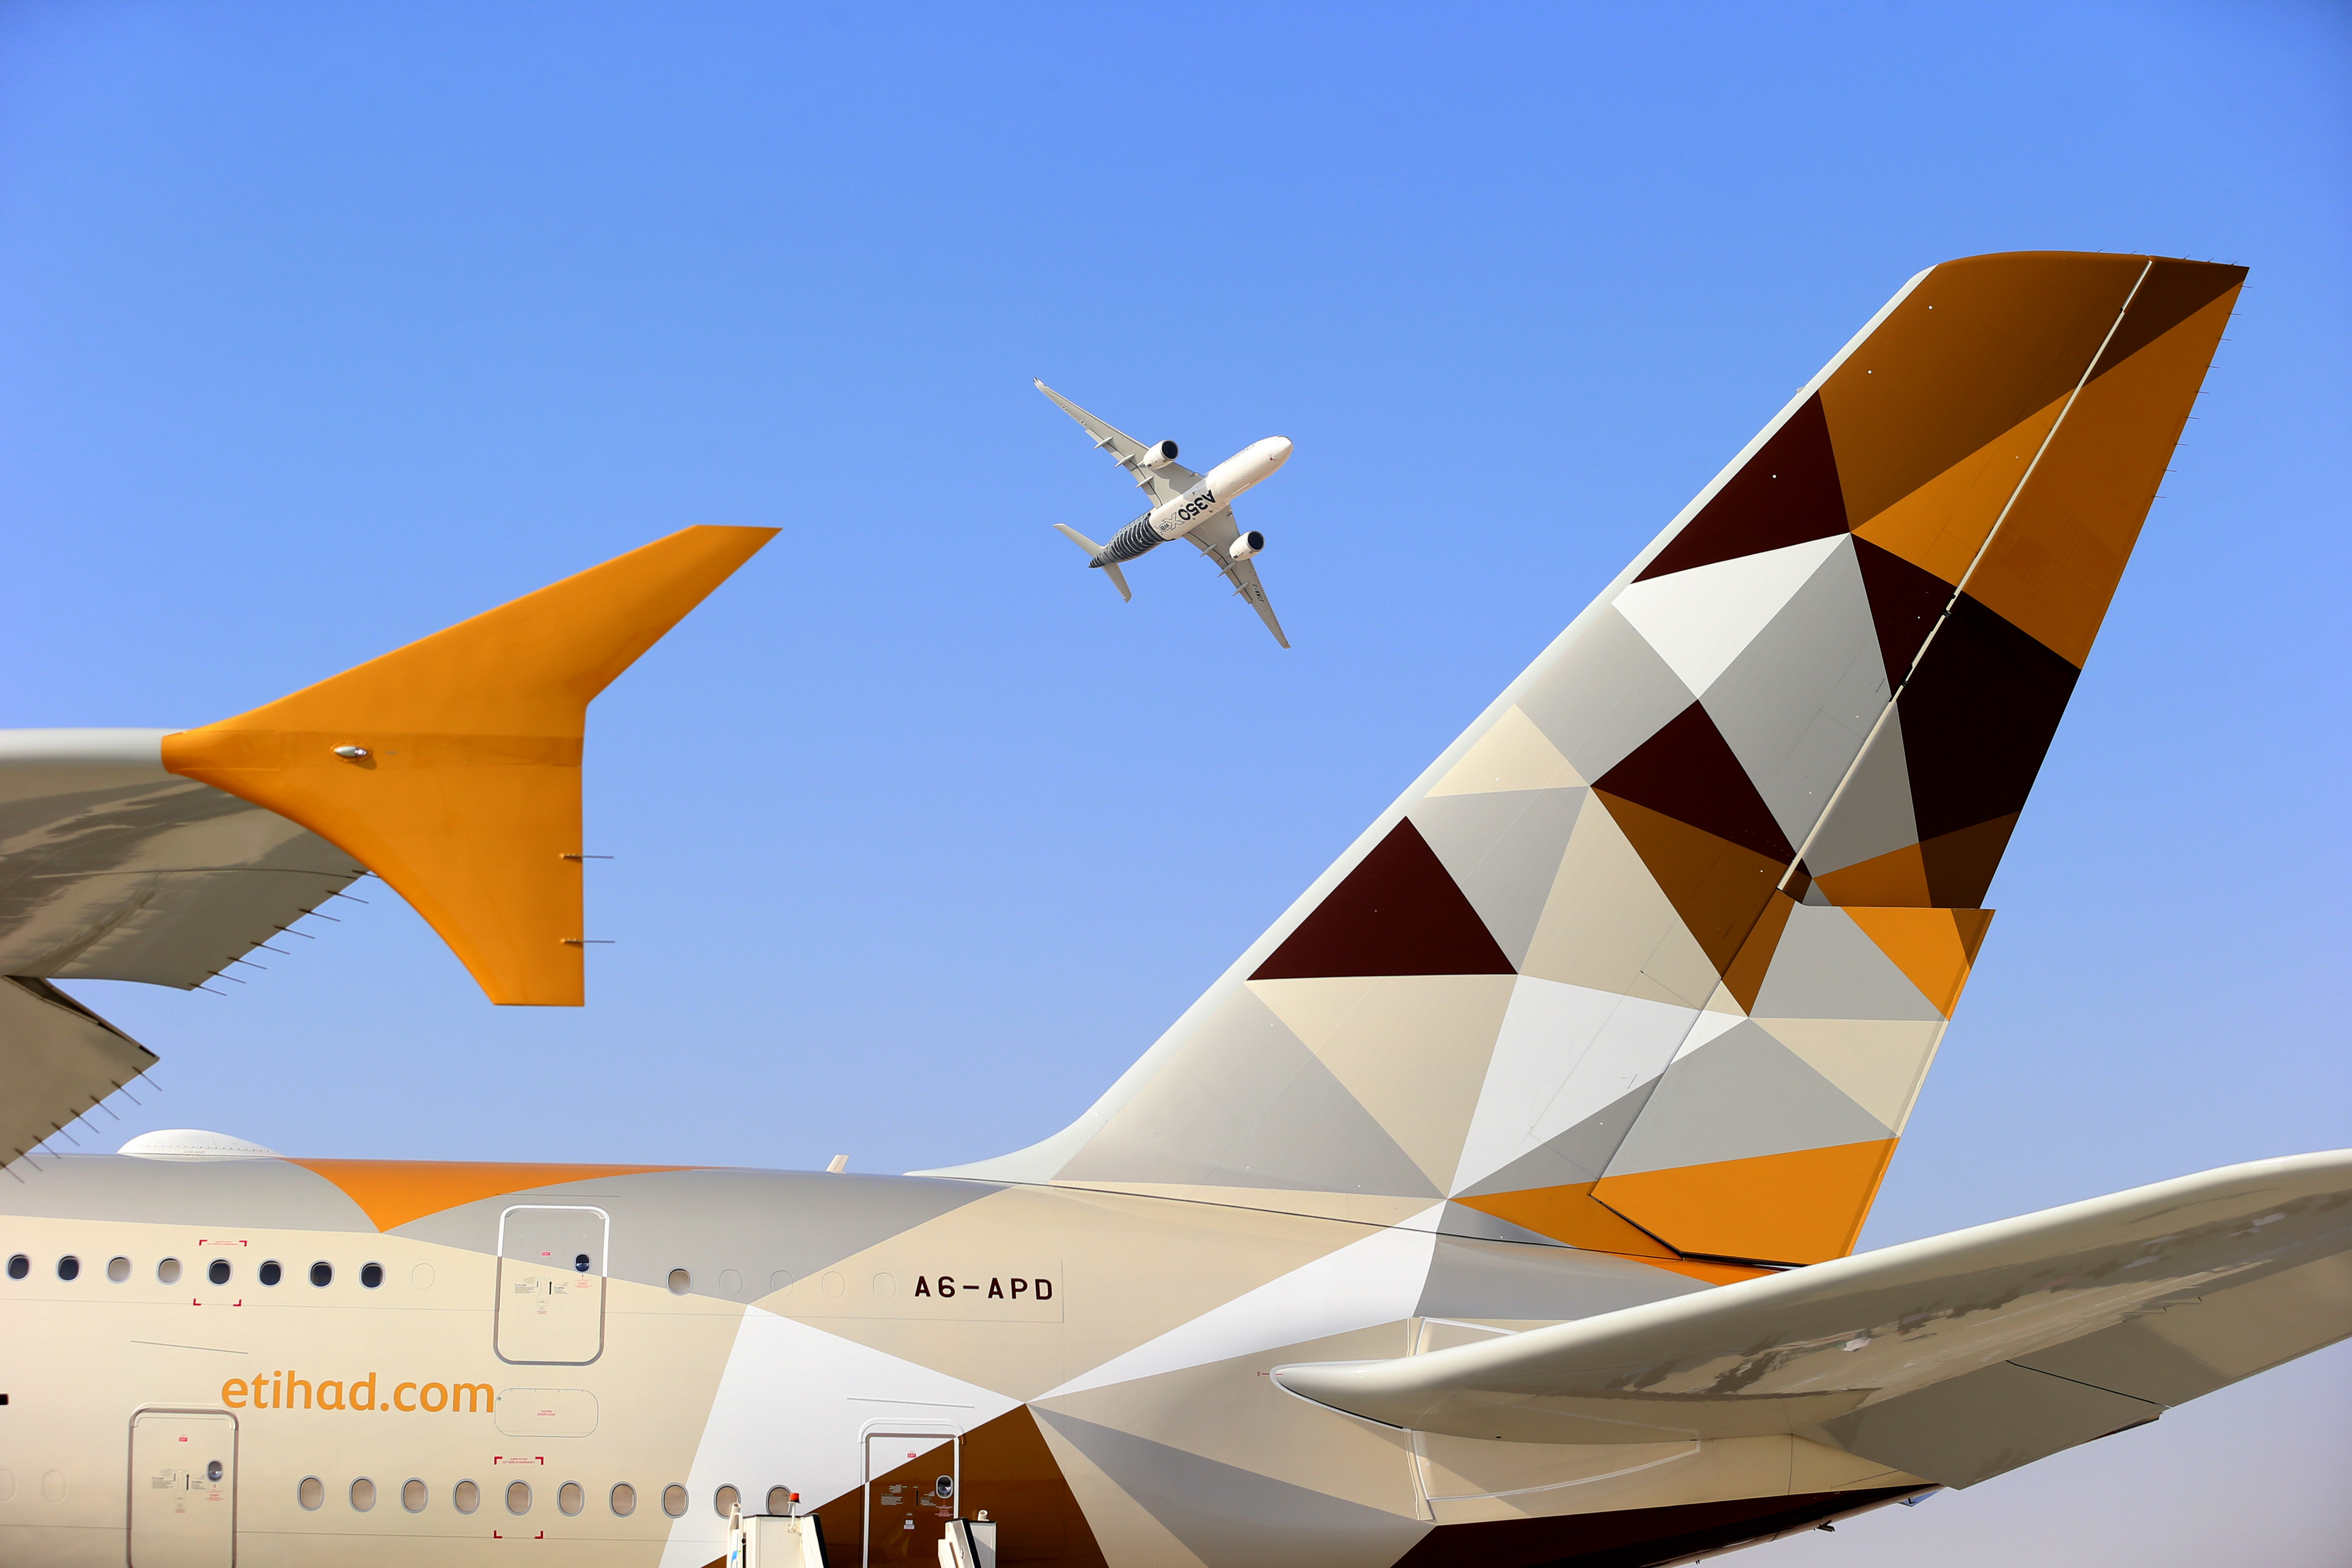 An Airbus A350-900 aircraft, manufactured by Airbus SAS, performs an aerial display above the tail fin of an Airbus A380 aircraft, operated by Eithad Airways, on the second day of the 14th Dubai Air Show at Dubai World Central (DWC) in Dubai, United Arab Emirates, on Monday, Nov. 9, 2015. The Dubai Air Show is the biggest aerospace event in the Middle East, Asia and Africa and runs Nov. 8 - 12. Photographer: Jasper Juinen/Bloomberg via Getty Images